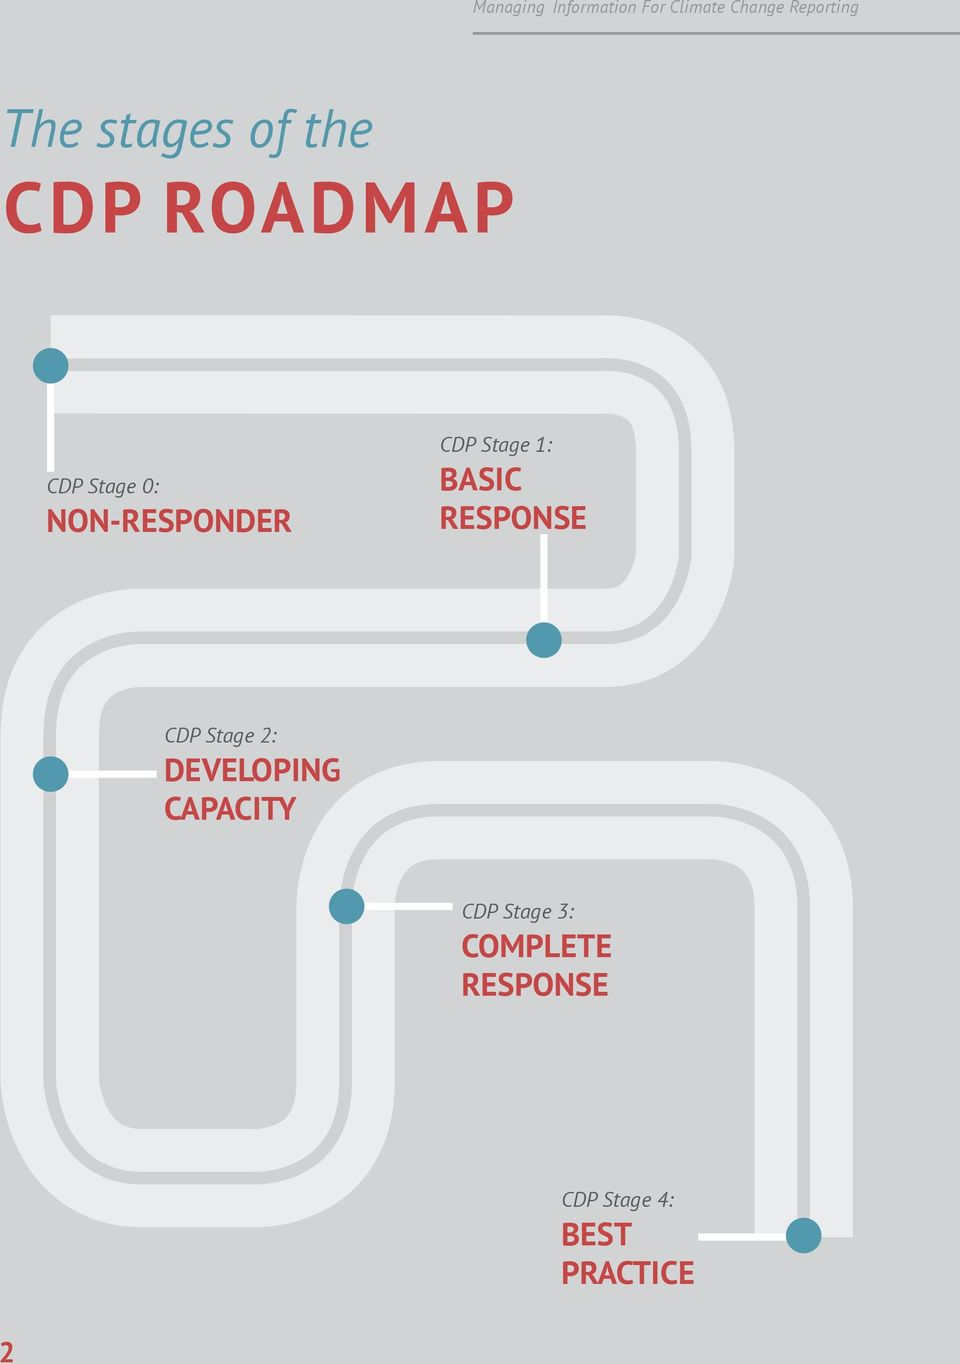 CDP Stage 2: DEVELOPING CAPACITY CDP Stage